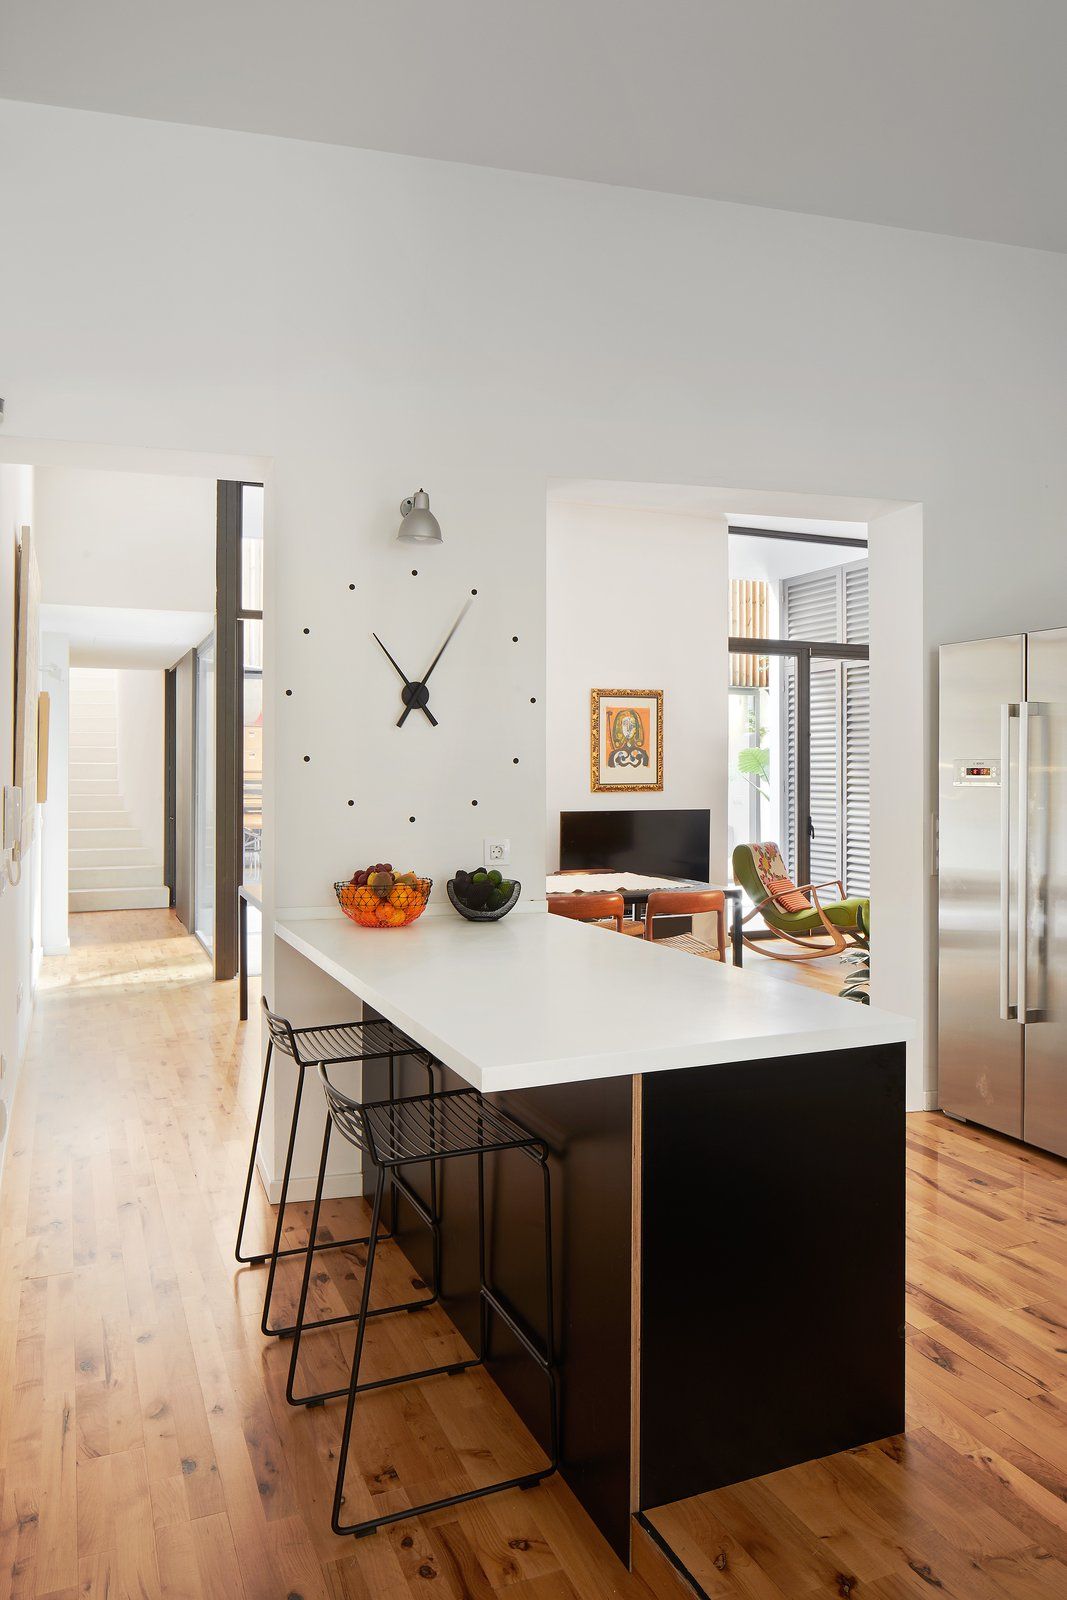 Kitchen, Wall, Laminate, Metal, Engineered Quartz, Porcelain Tile, Medium Hardwood, and Microwave Kitchen island   Kitchen Laminate Engineered Quartz Photos from Conversion of a ground-floor publisher's warehouse into a residence and atelier for an artist-architect couple